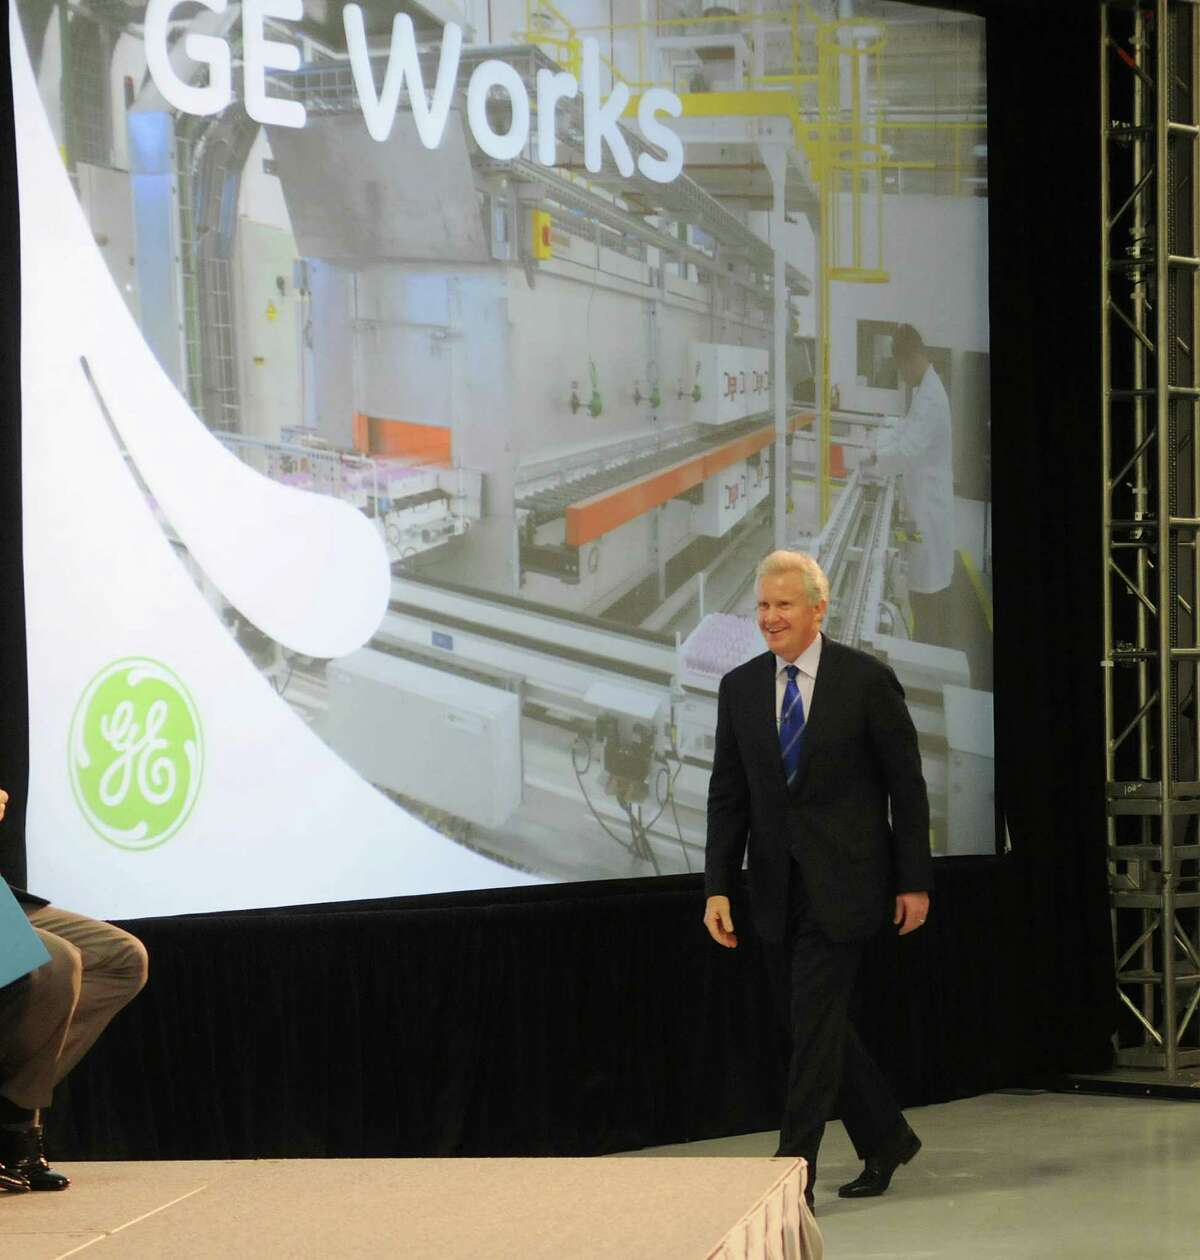 Jeffrey Immelt, GE chairman and CEO, makes his way to the stage at the opening of the company's new battery plant on Tuesday, July 10, 2012 at the GE campus in Schenectady, NY. The plant will use GE's durathon battery technology in manufacturing batteries for industry. (Paul Buckowski / Times Union)